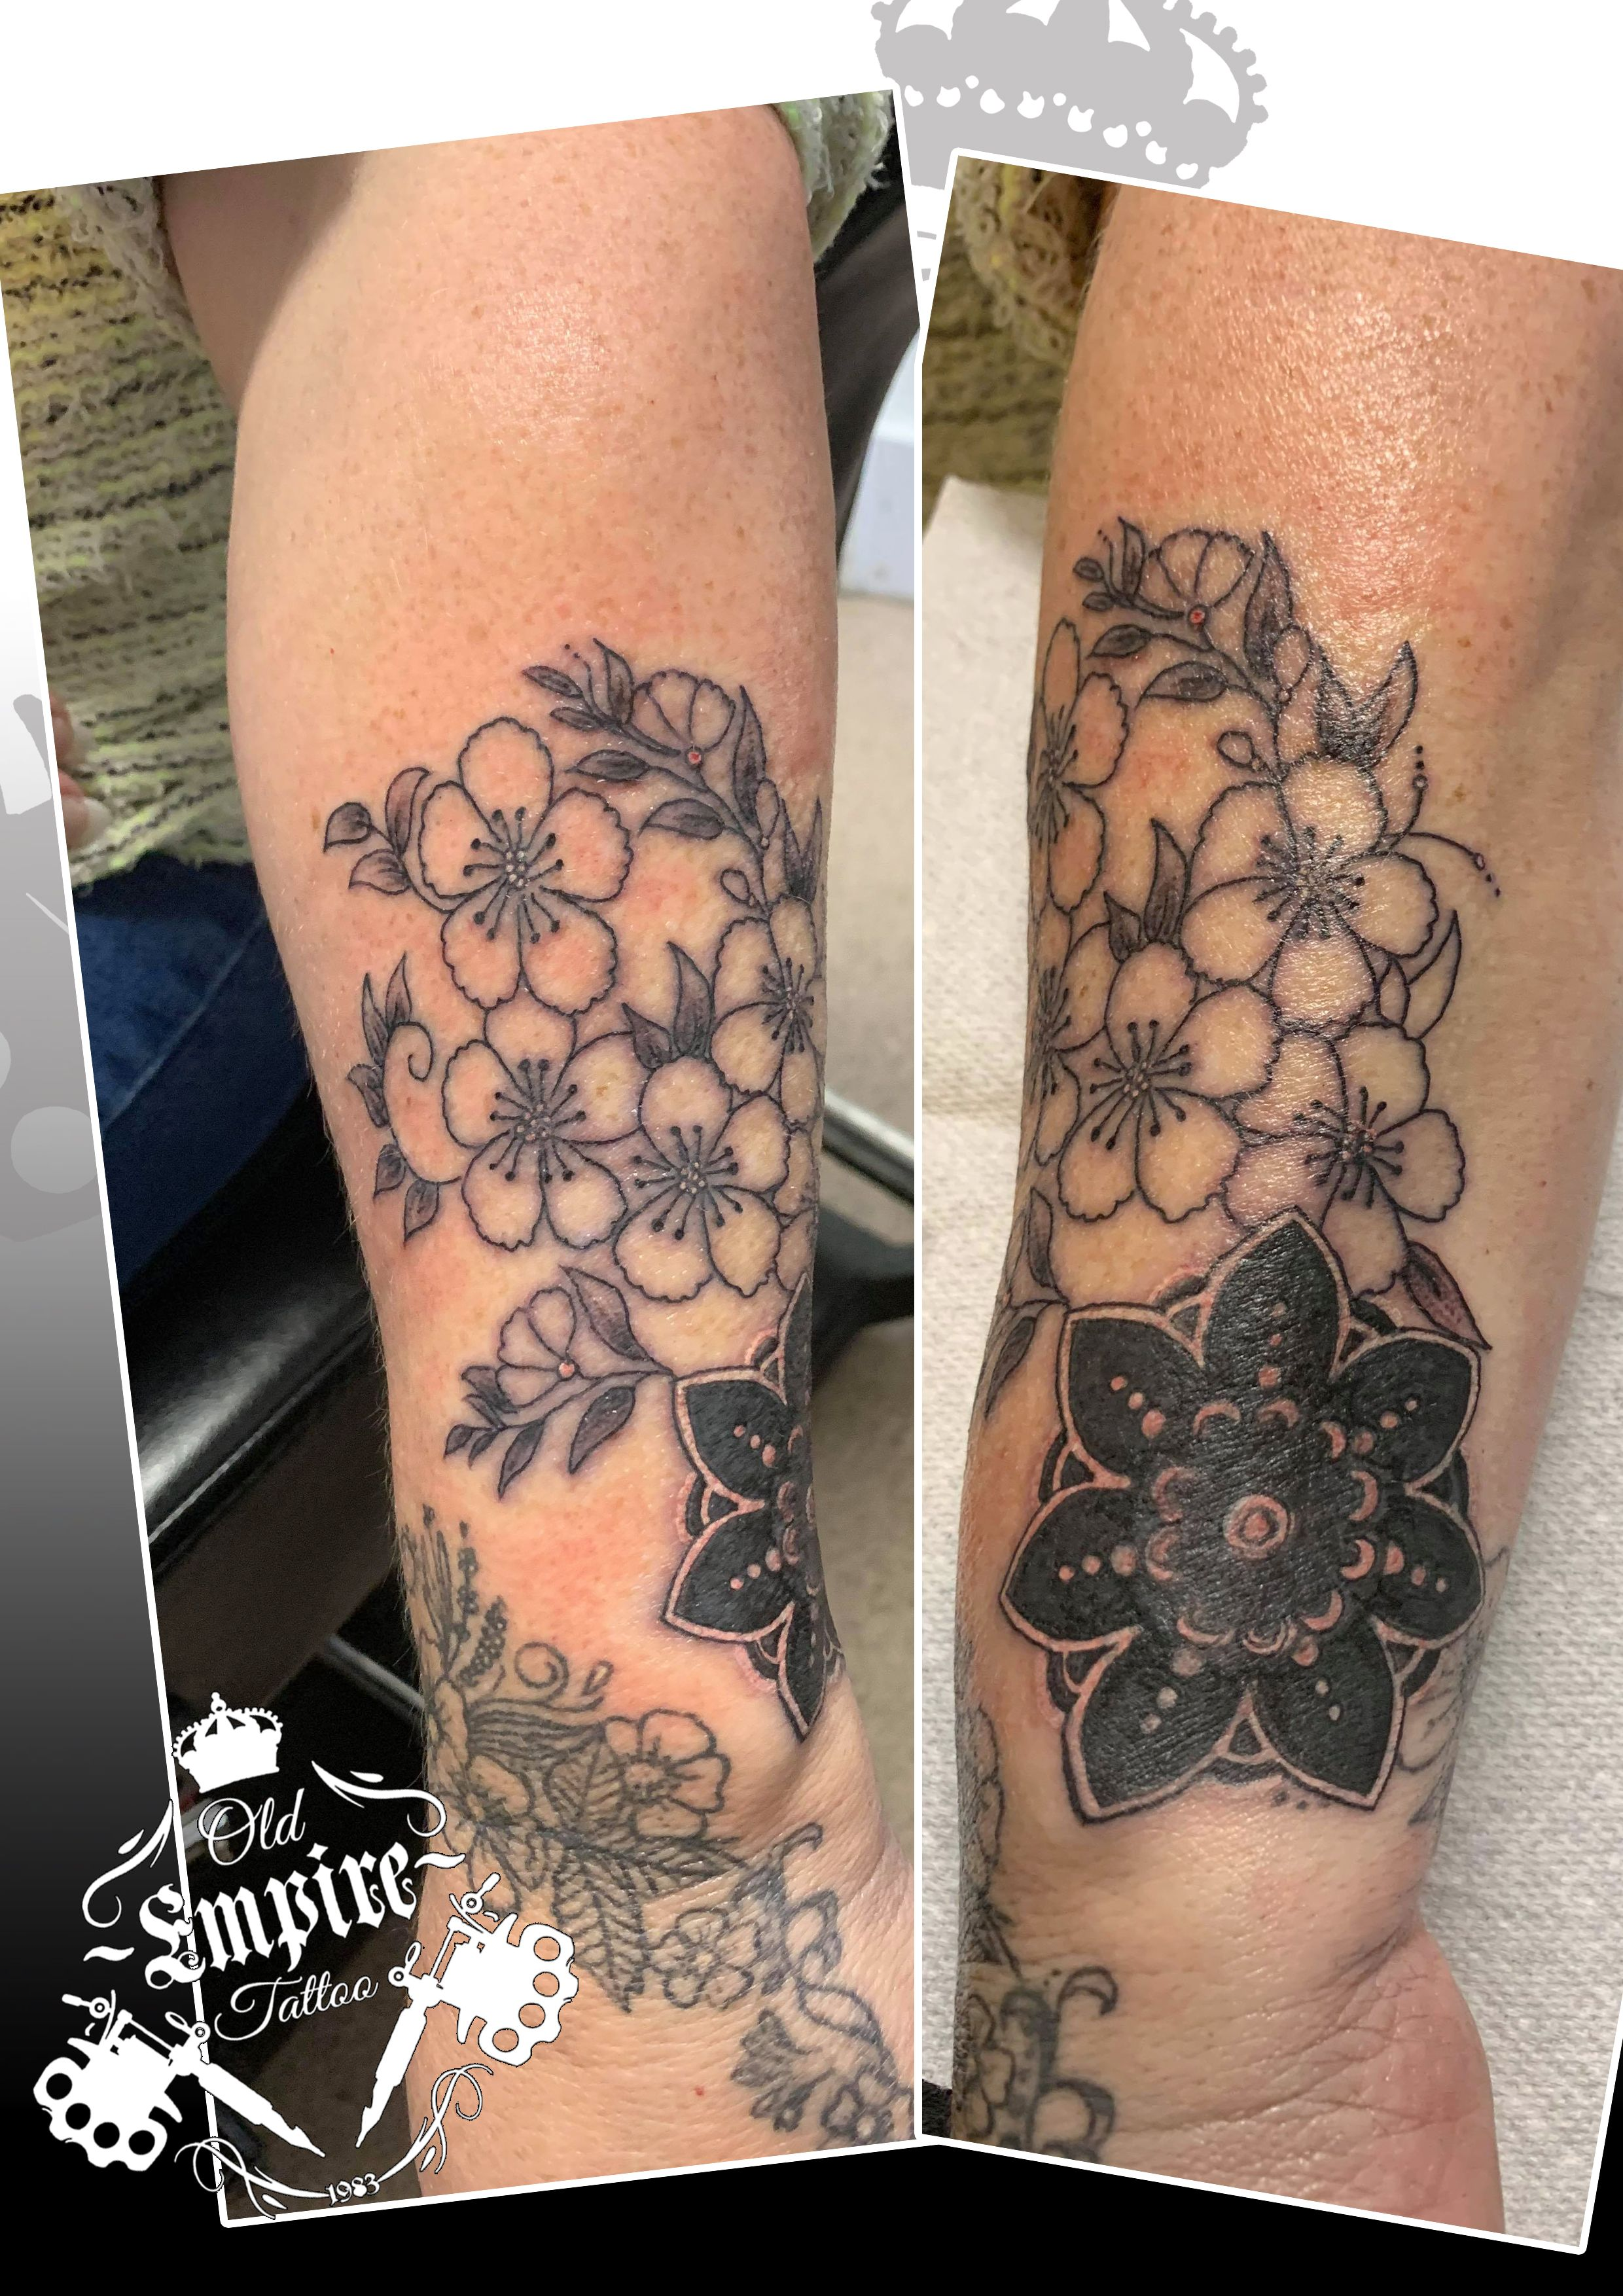 Cover up from today ! Got rid of a unwanted tattoo with some cute flowers 💐 #coverup #flowertattoo #floraltattoo #cover #covertattoo # #tattooist #blackandgreytattoo #tattooartist #tattoos